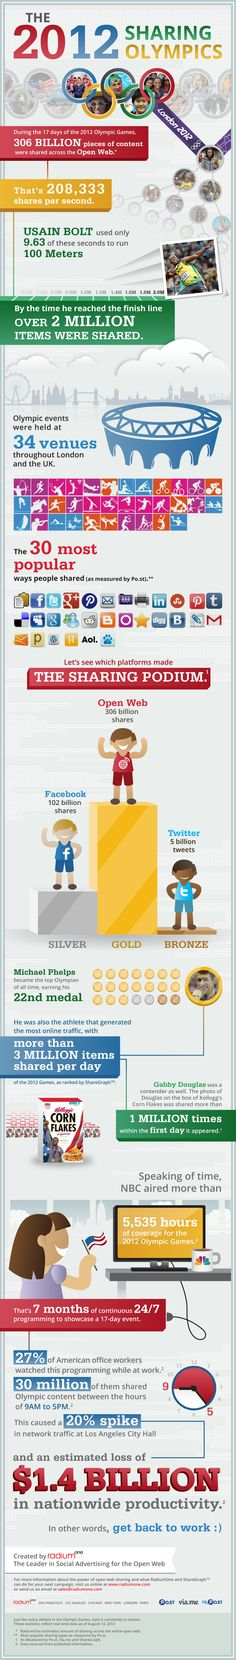 The 2012 sharing olympics #infographic